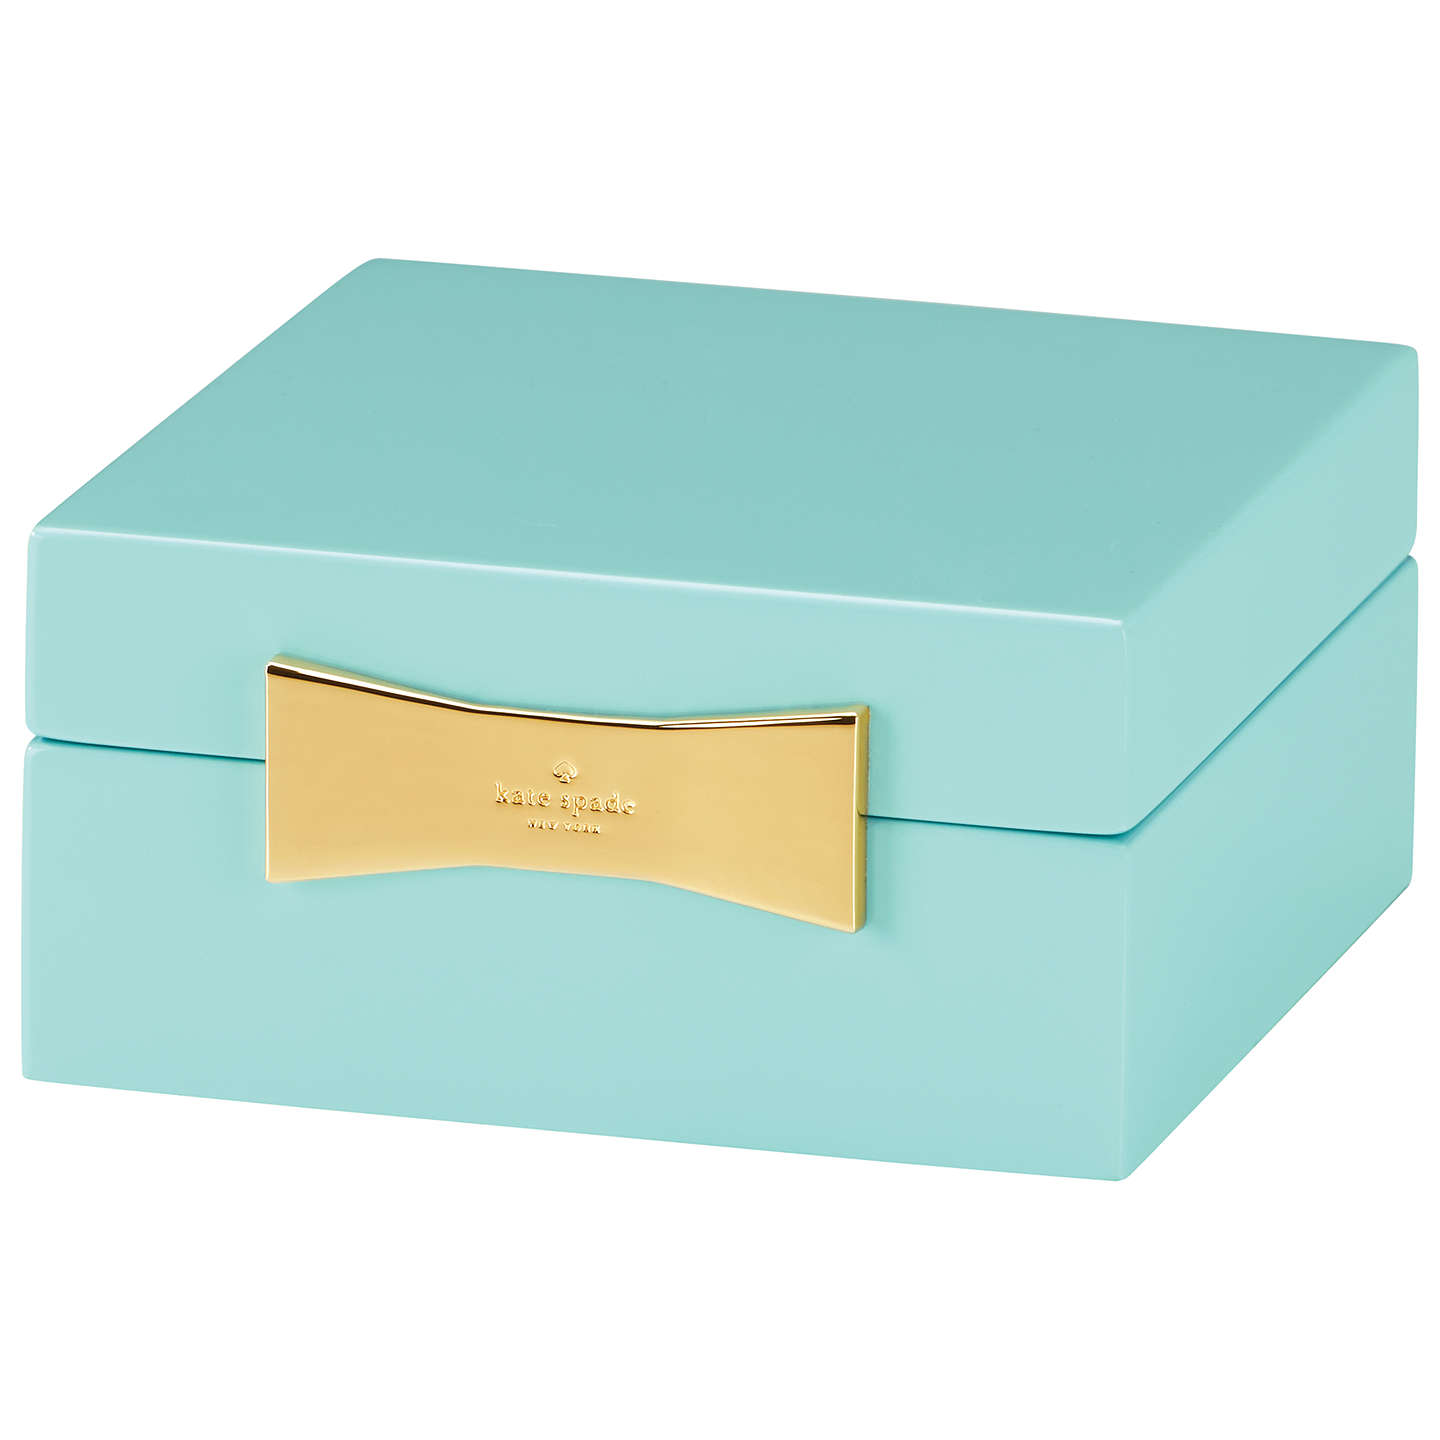 Buykate spade new york Garden Drive Jewellery Box, Turquoise Online at johnlewis.com